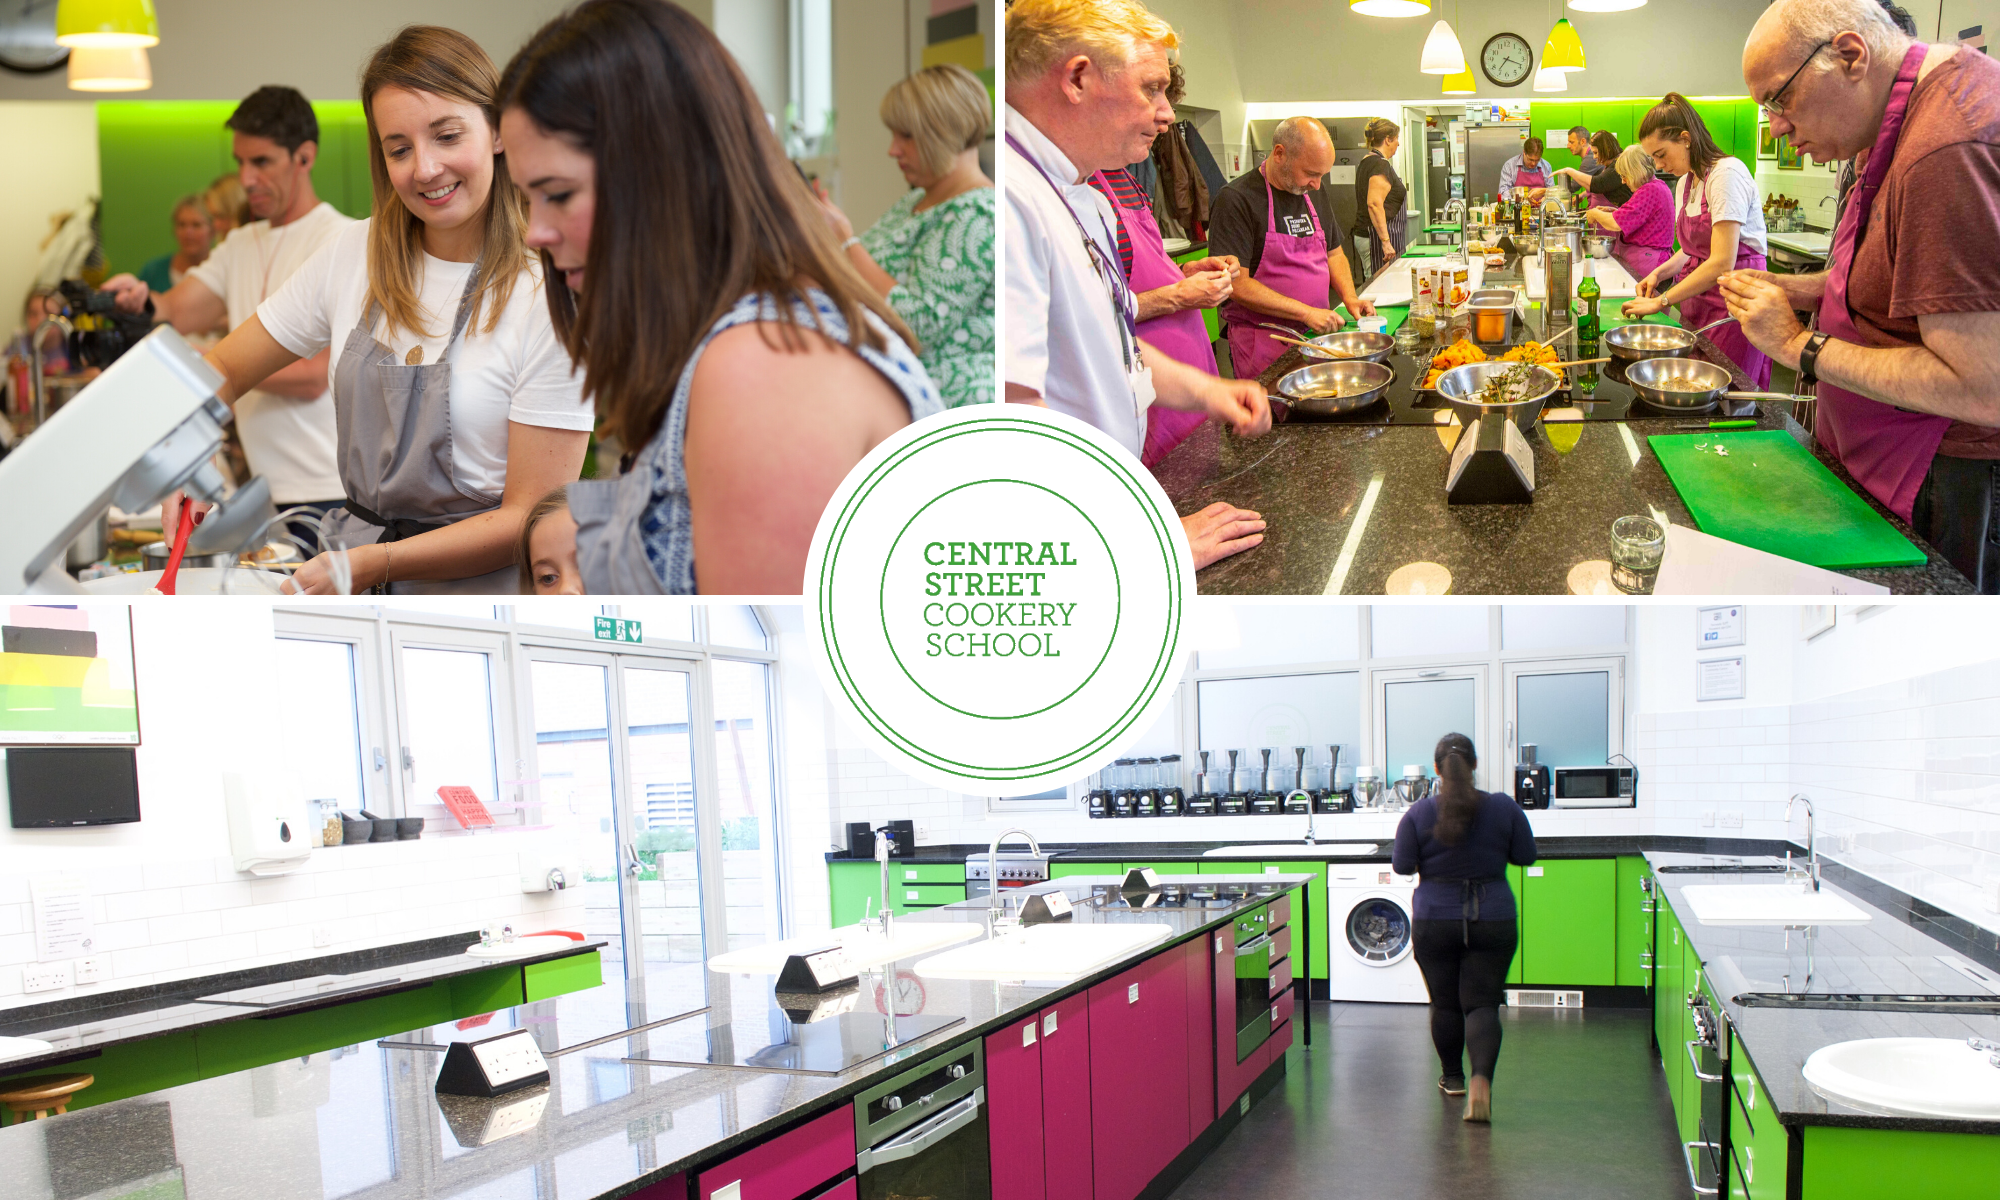 Central Street Cookery School